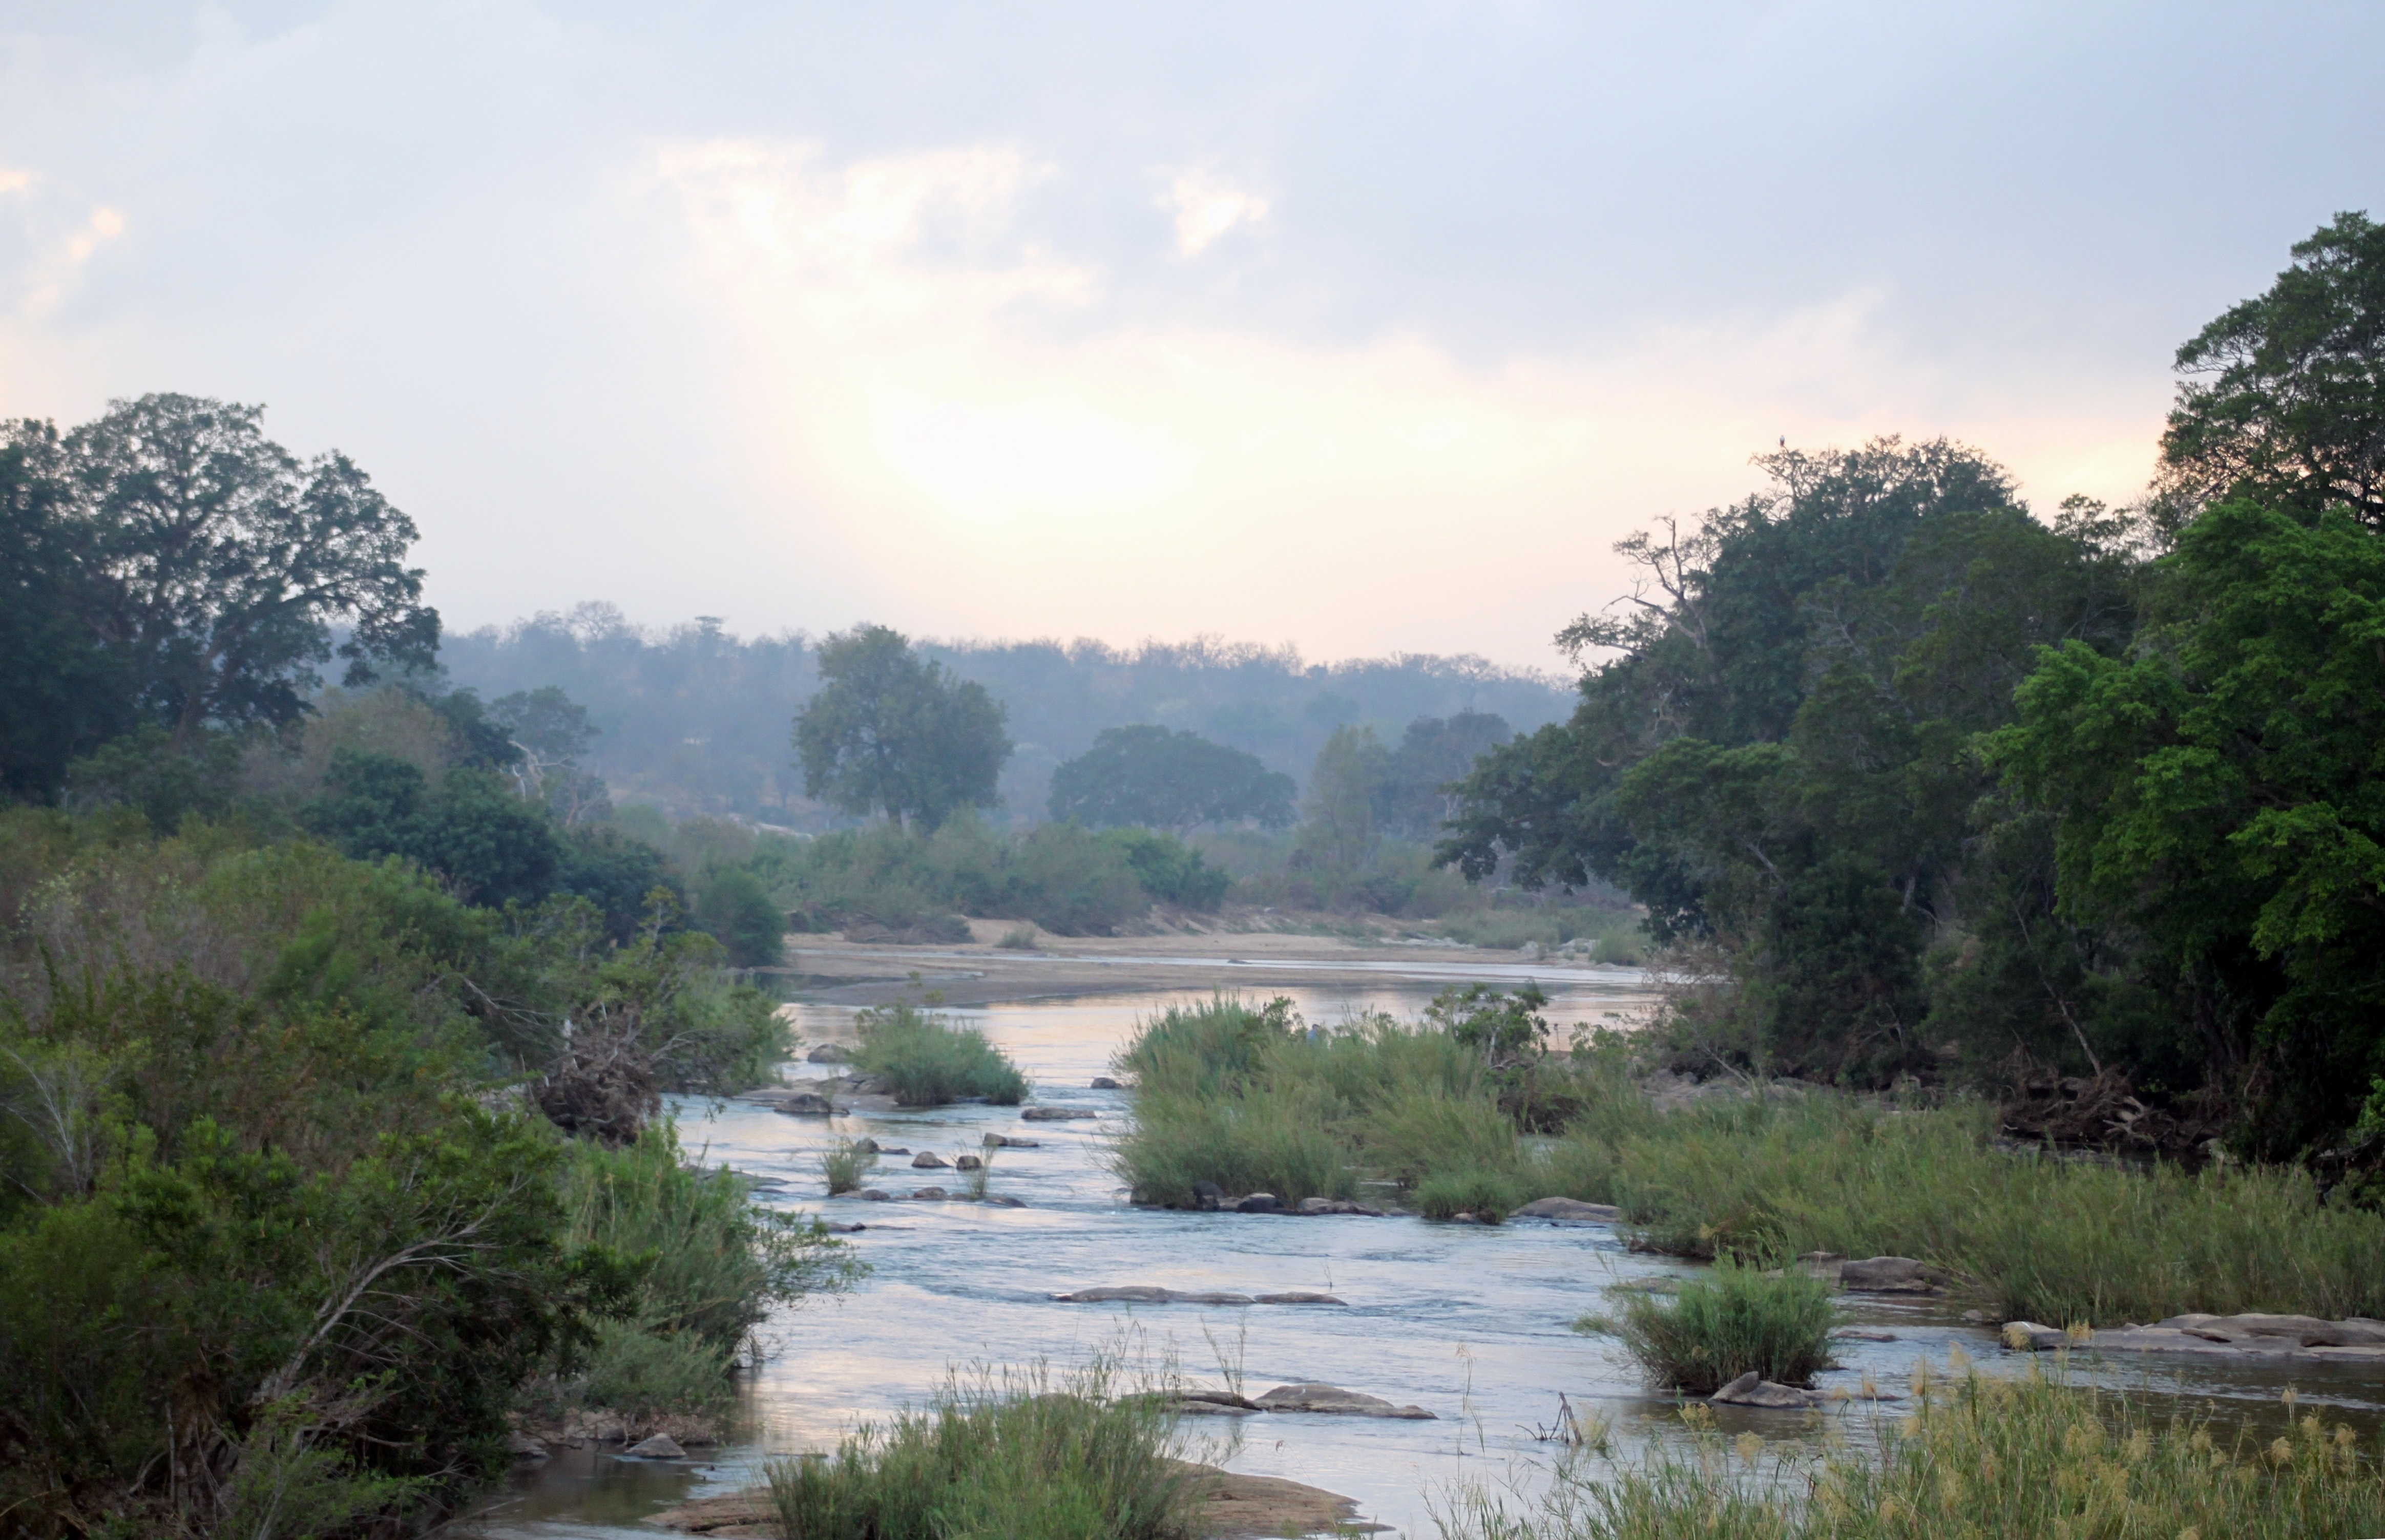 """New Report Finds African Rivers """"Bleach-like"""" Due to Fast Fashion Textile Factories"""